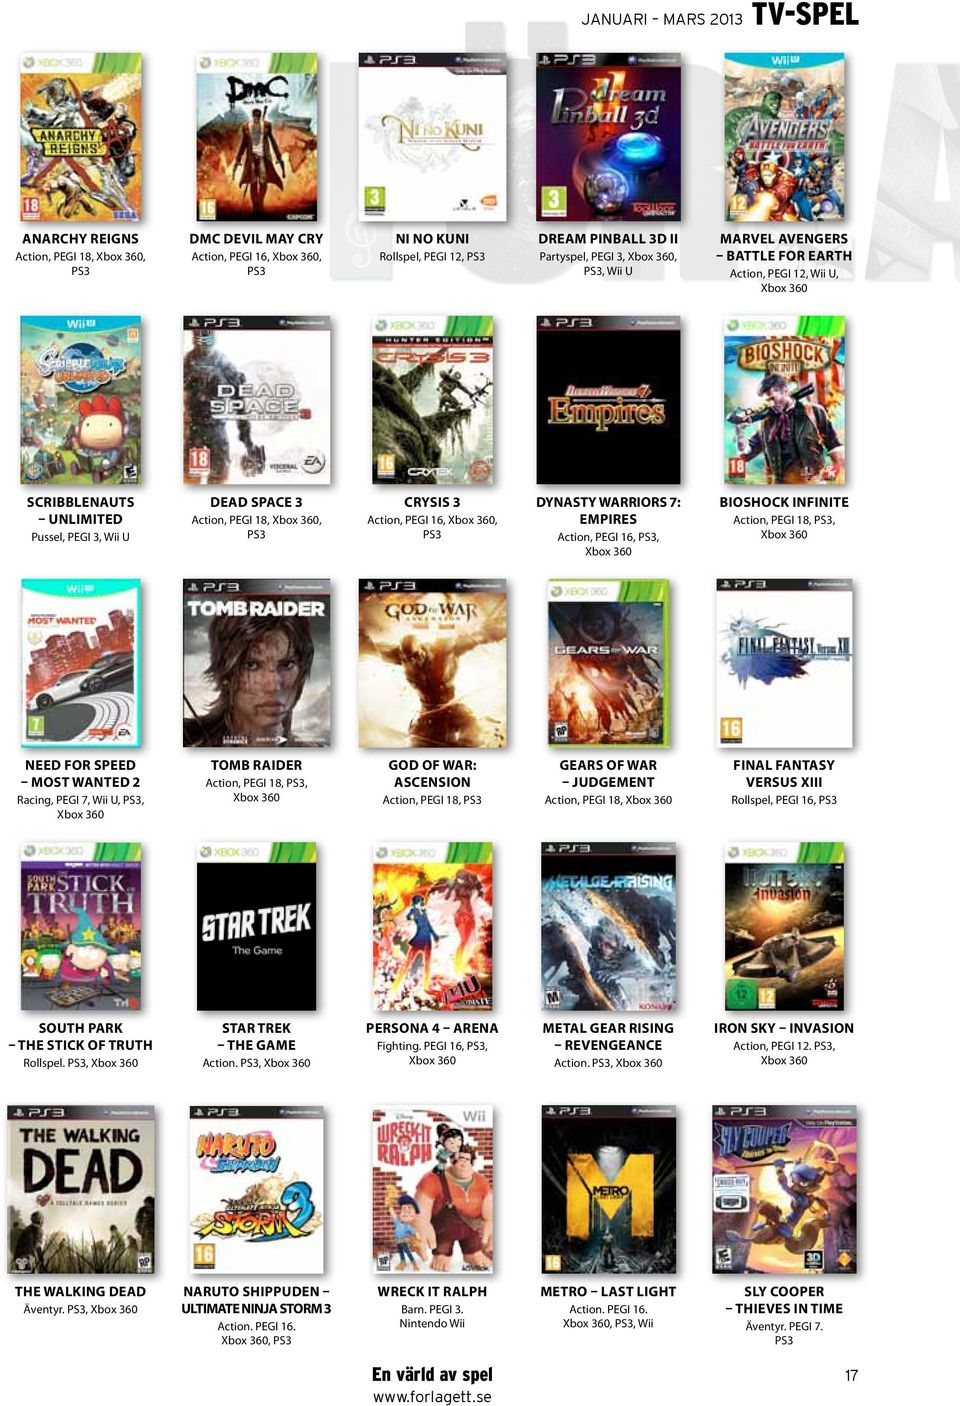 Xbox 360, PS3 Dynasty Warriors 7: Empires Action, PEGI 16, PS3, Xbox 360 Bioshock Infinite Action, PEGI 18, PS3, Xbox 360 Need for Speed Most Wanted 2 Racing, PEGI 7, Wii U, PS3, Xbox 360 Tomb Raider